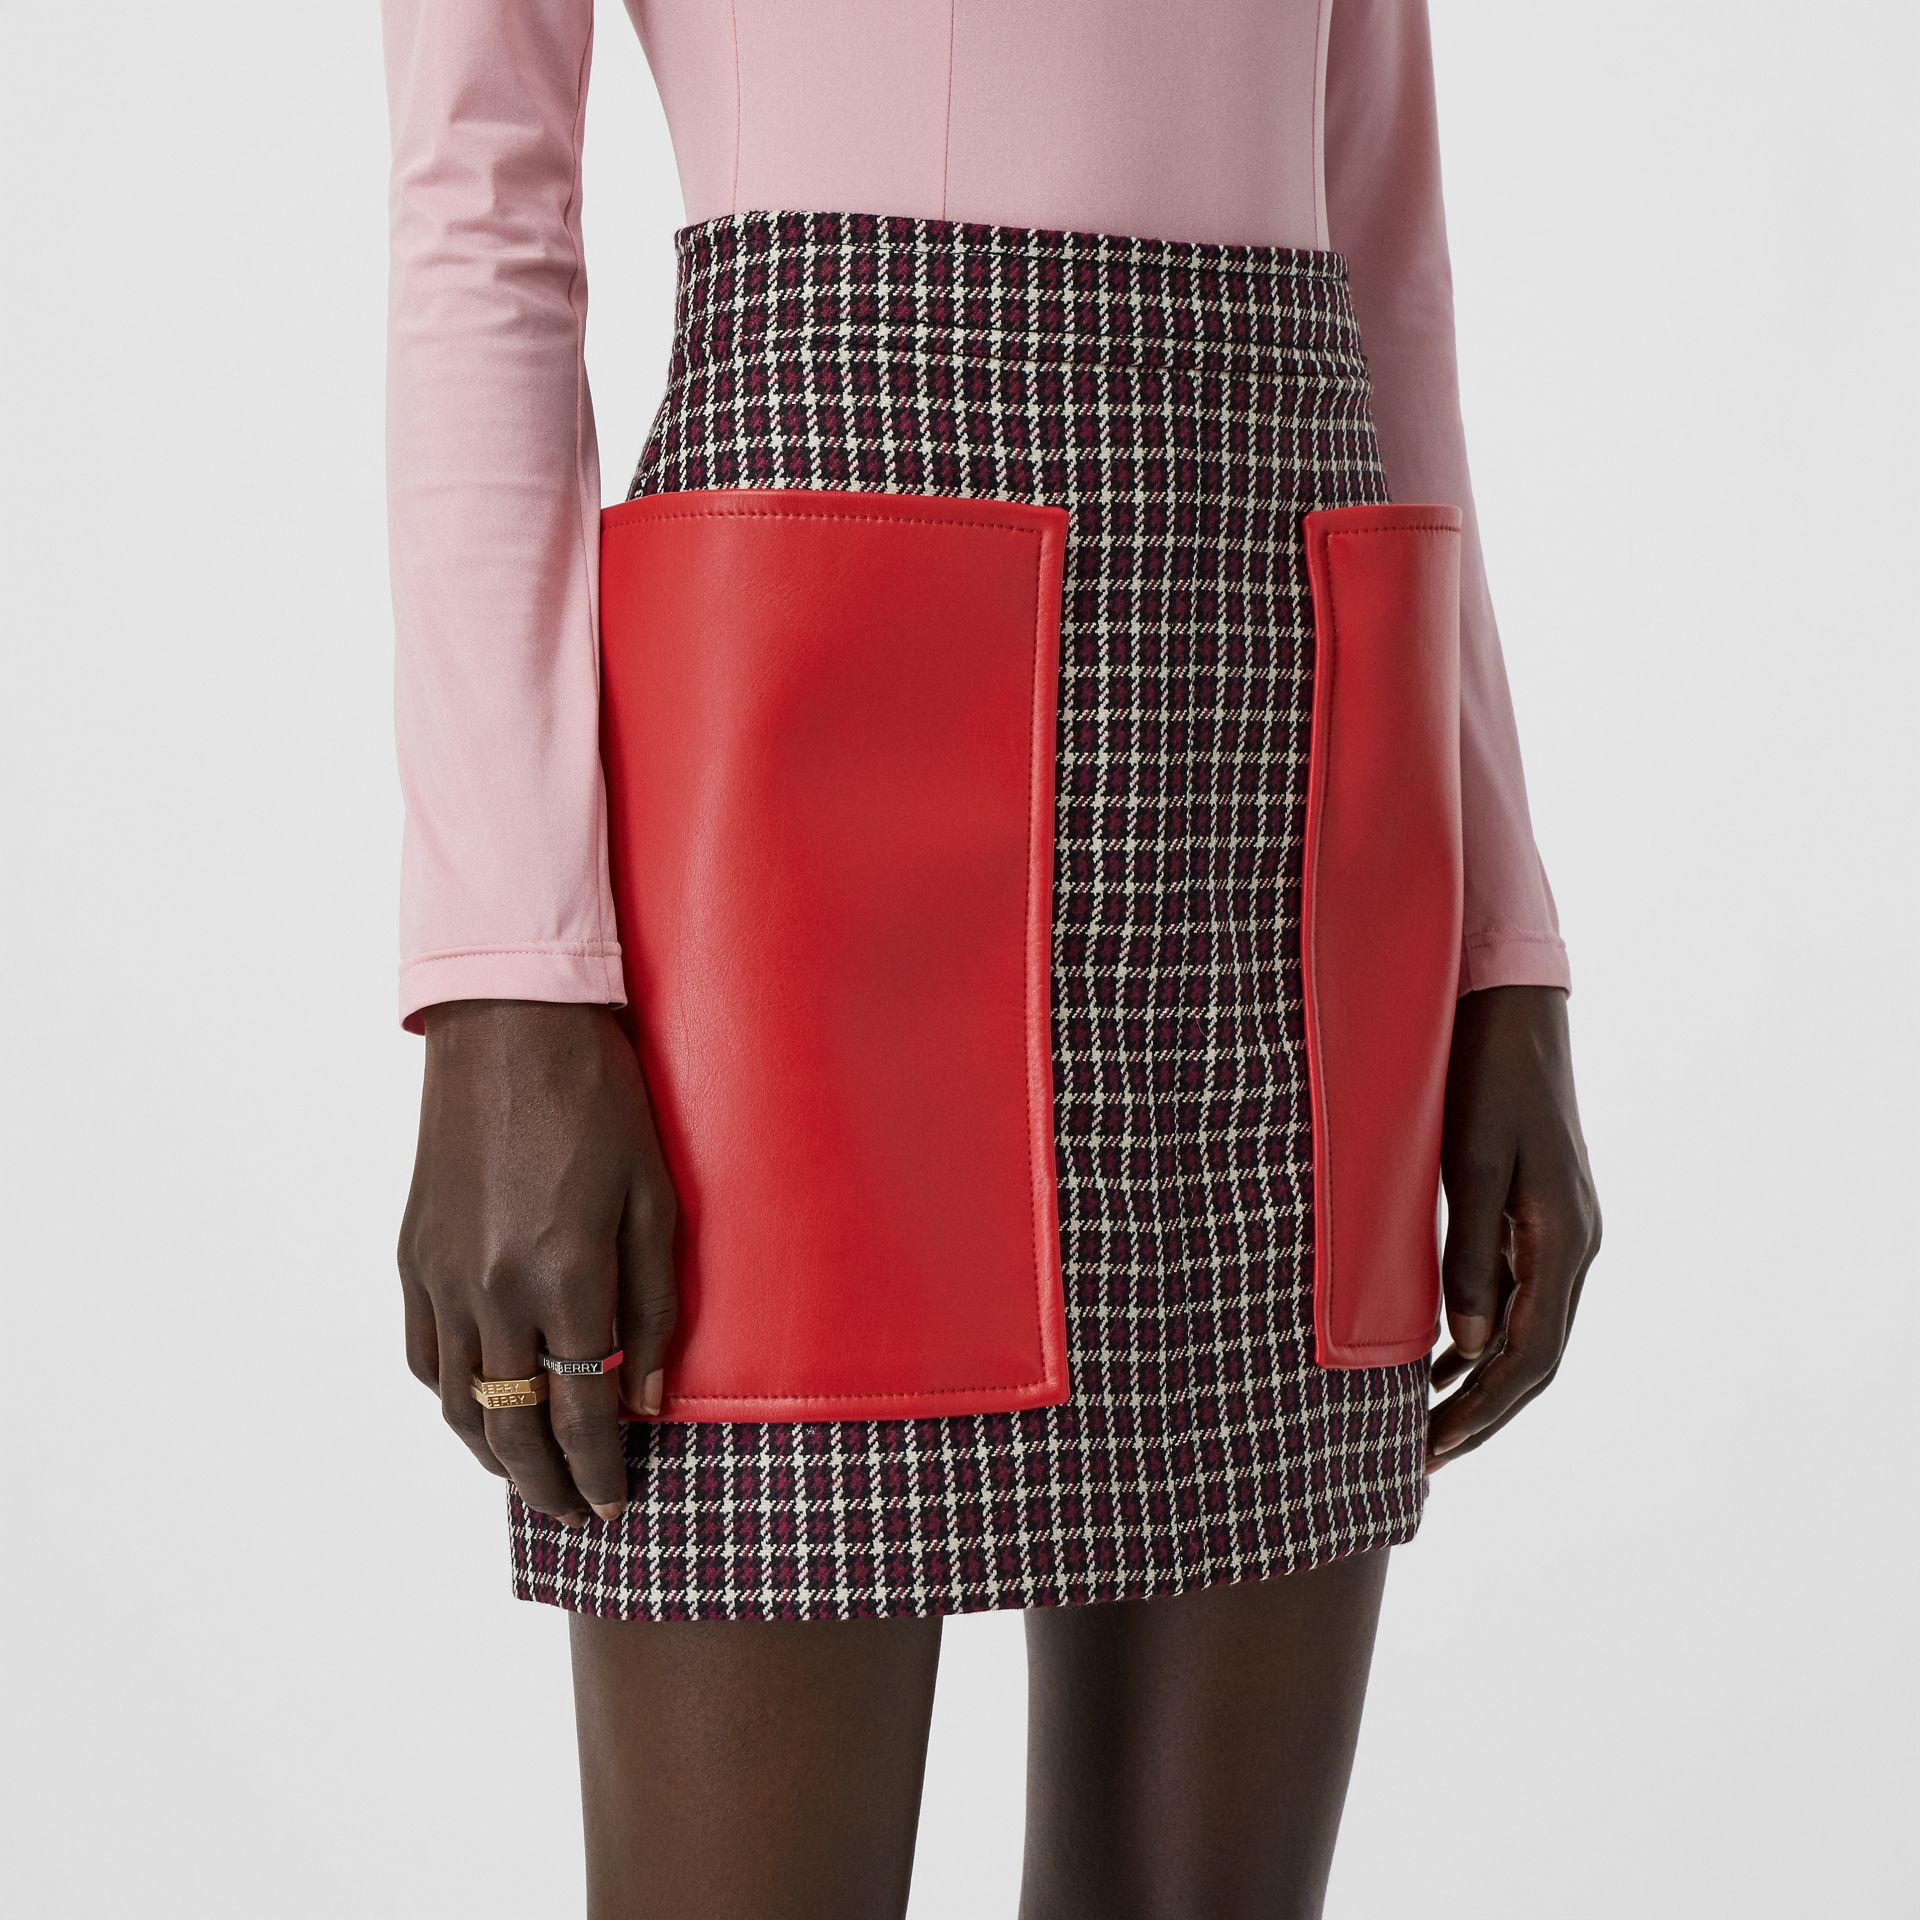 Pocket Detail Tartan Wool Mini Skirt in Bordeaux - Women | Burberry - gallery image 6